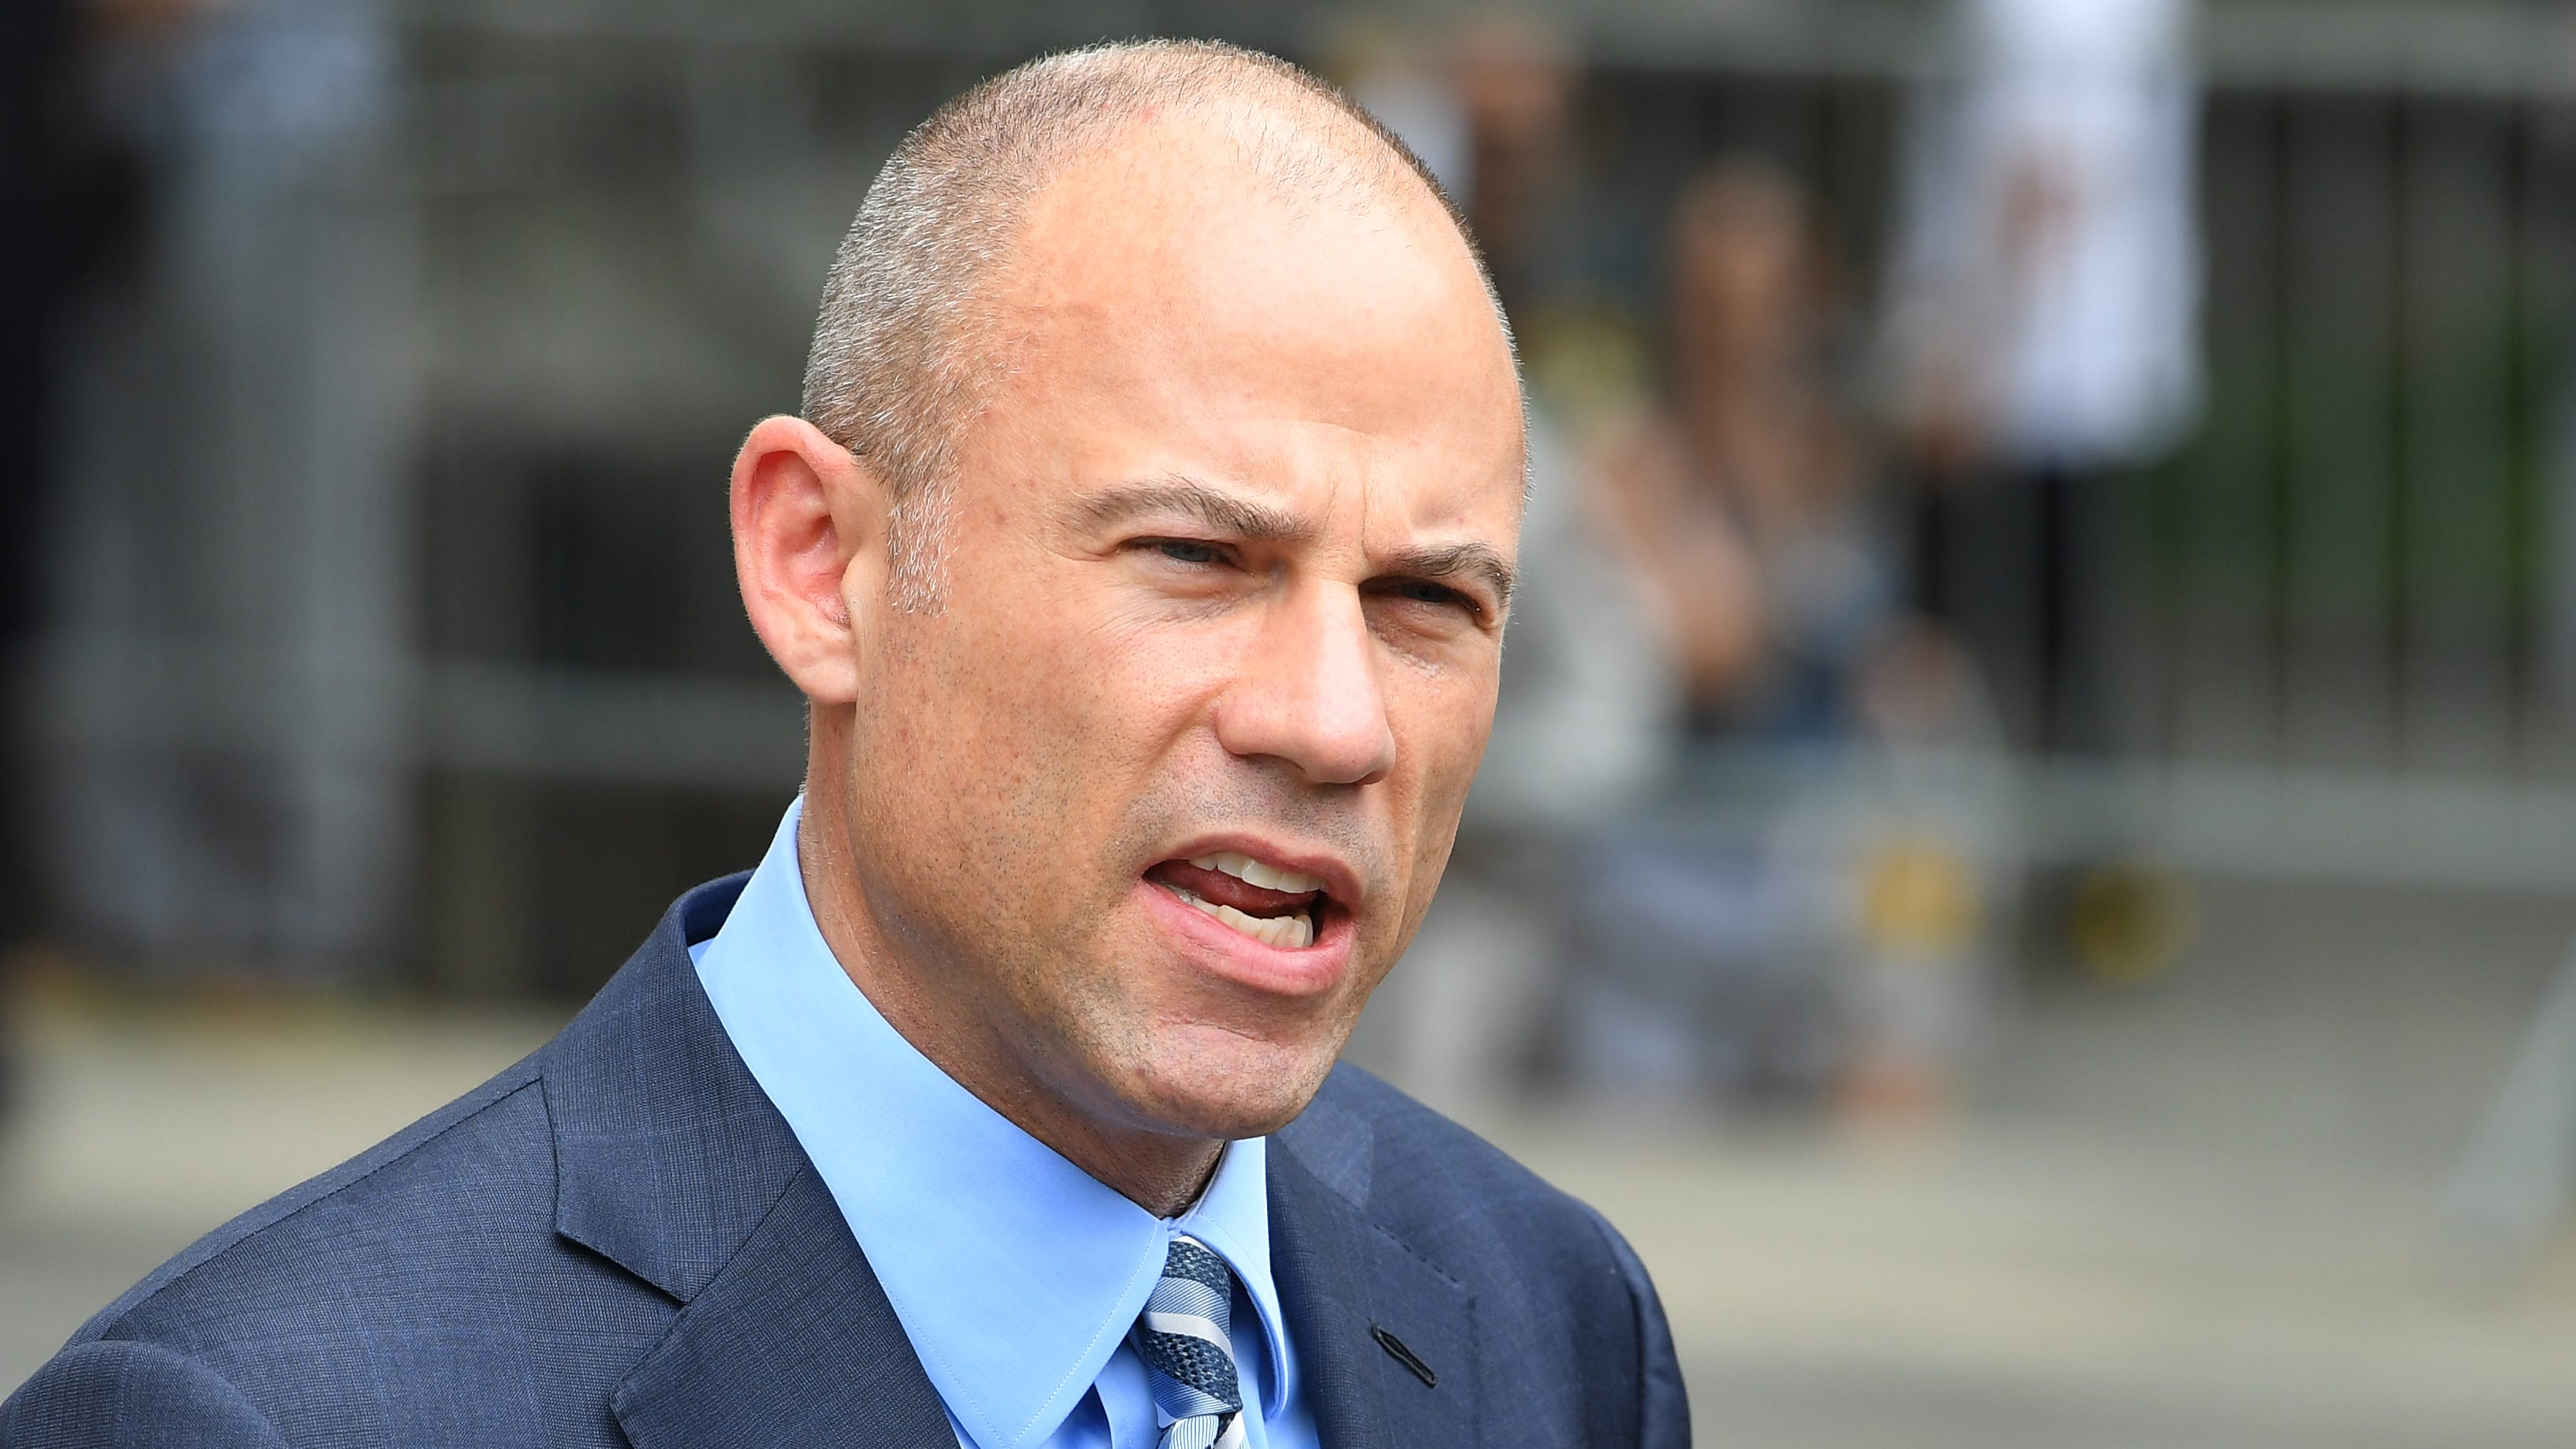 Attorney Michael Avenatti leaves court and addresses the media on May 30, 2018 in a case brought by Michael Cohen, President Donald Trump's longtime personal lawyer, to limit prosecutors' review of documents seized from his home and office.